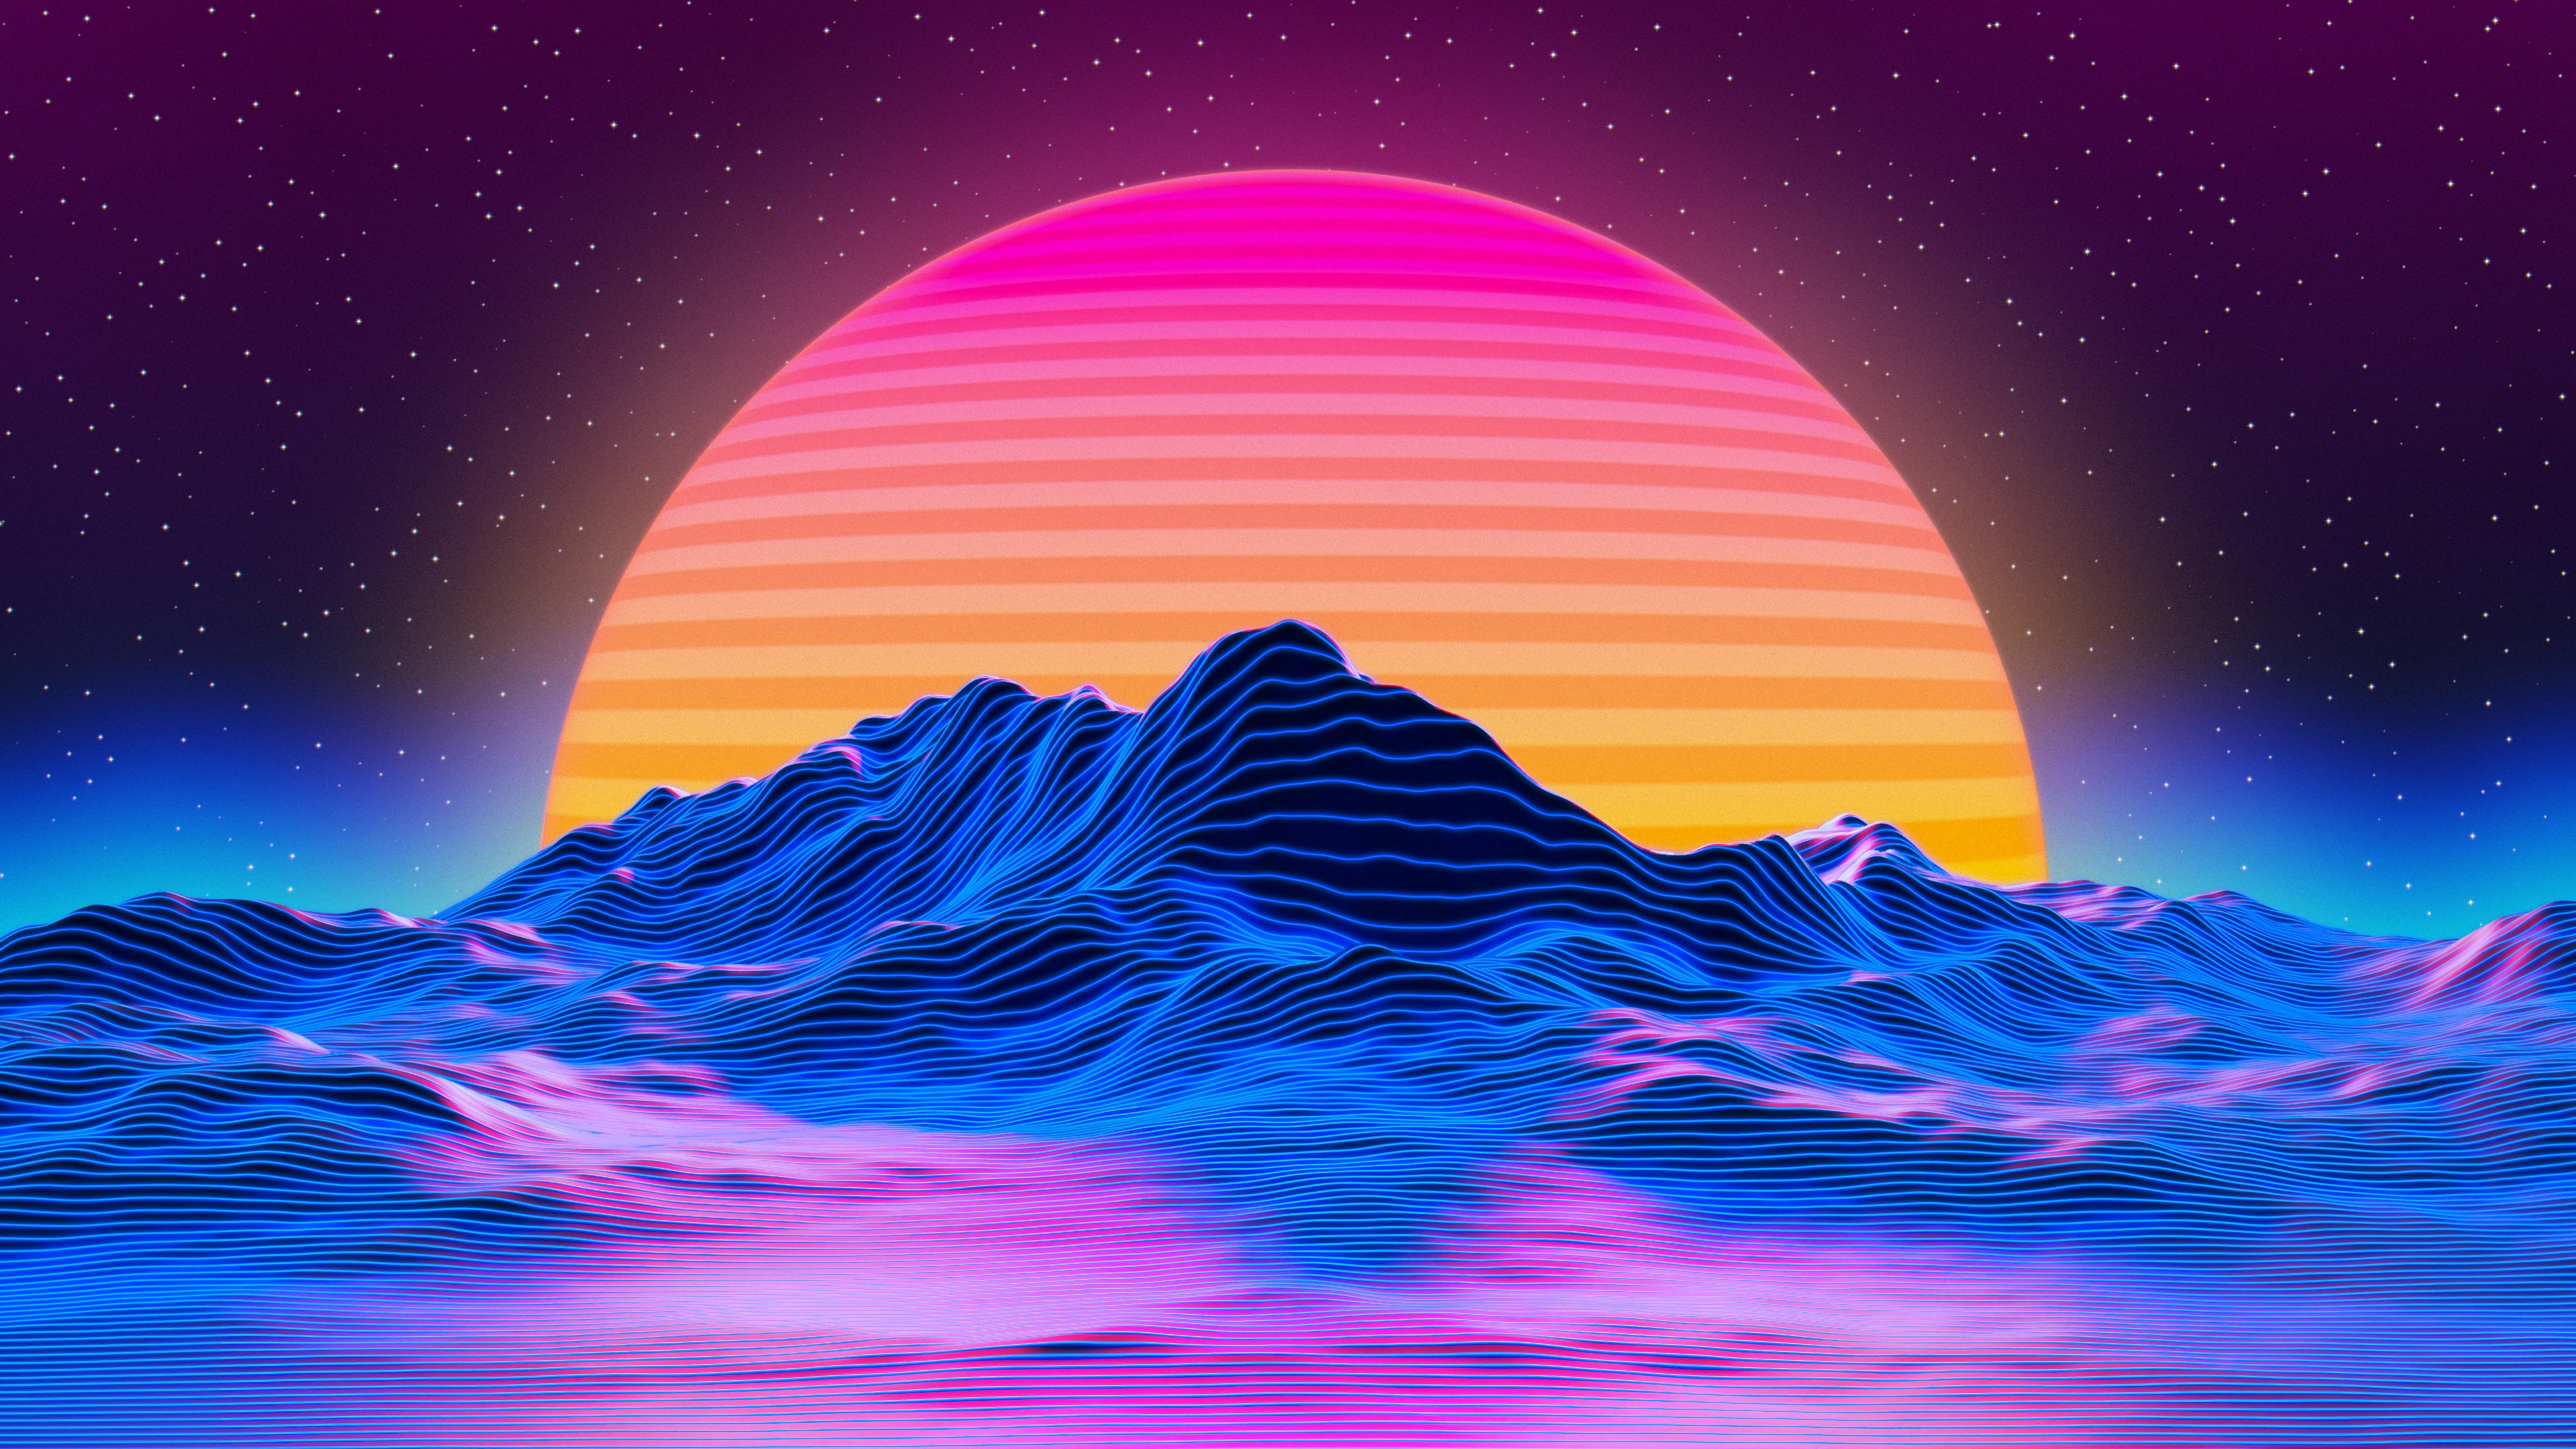 Retro Sunset Wallpapers   Top Retro Sunset Backgrounds 5120x2880